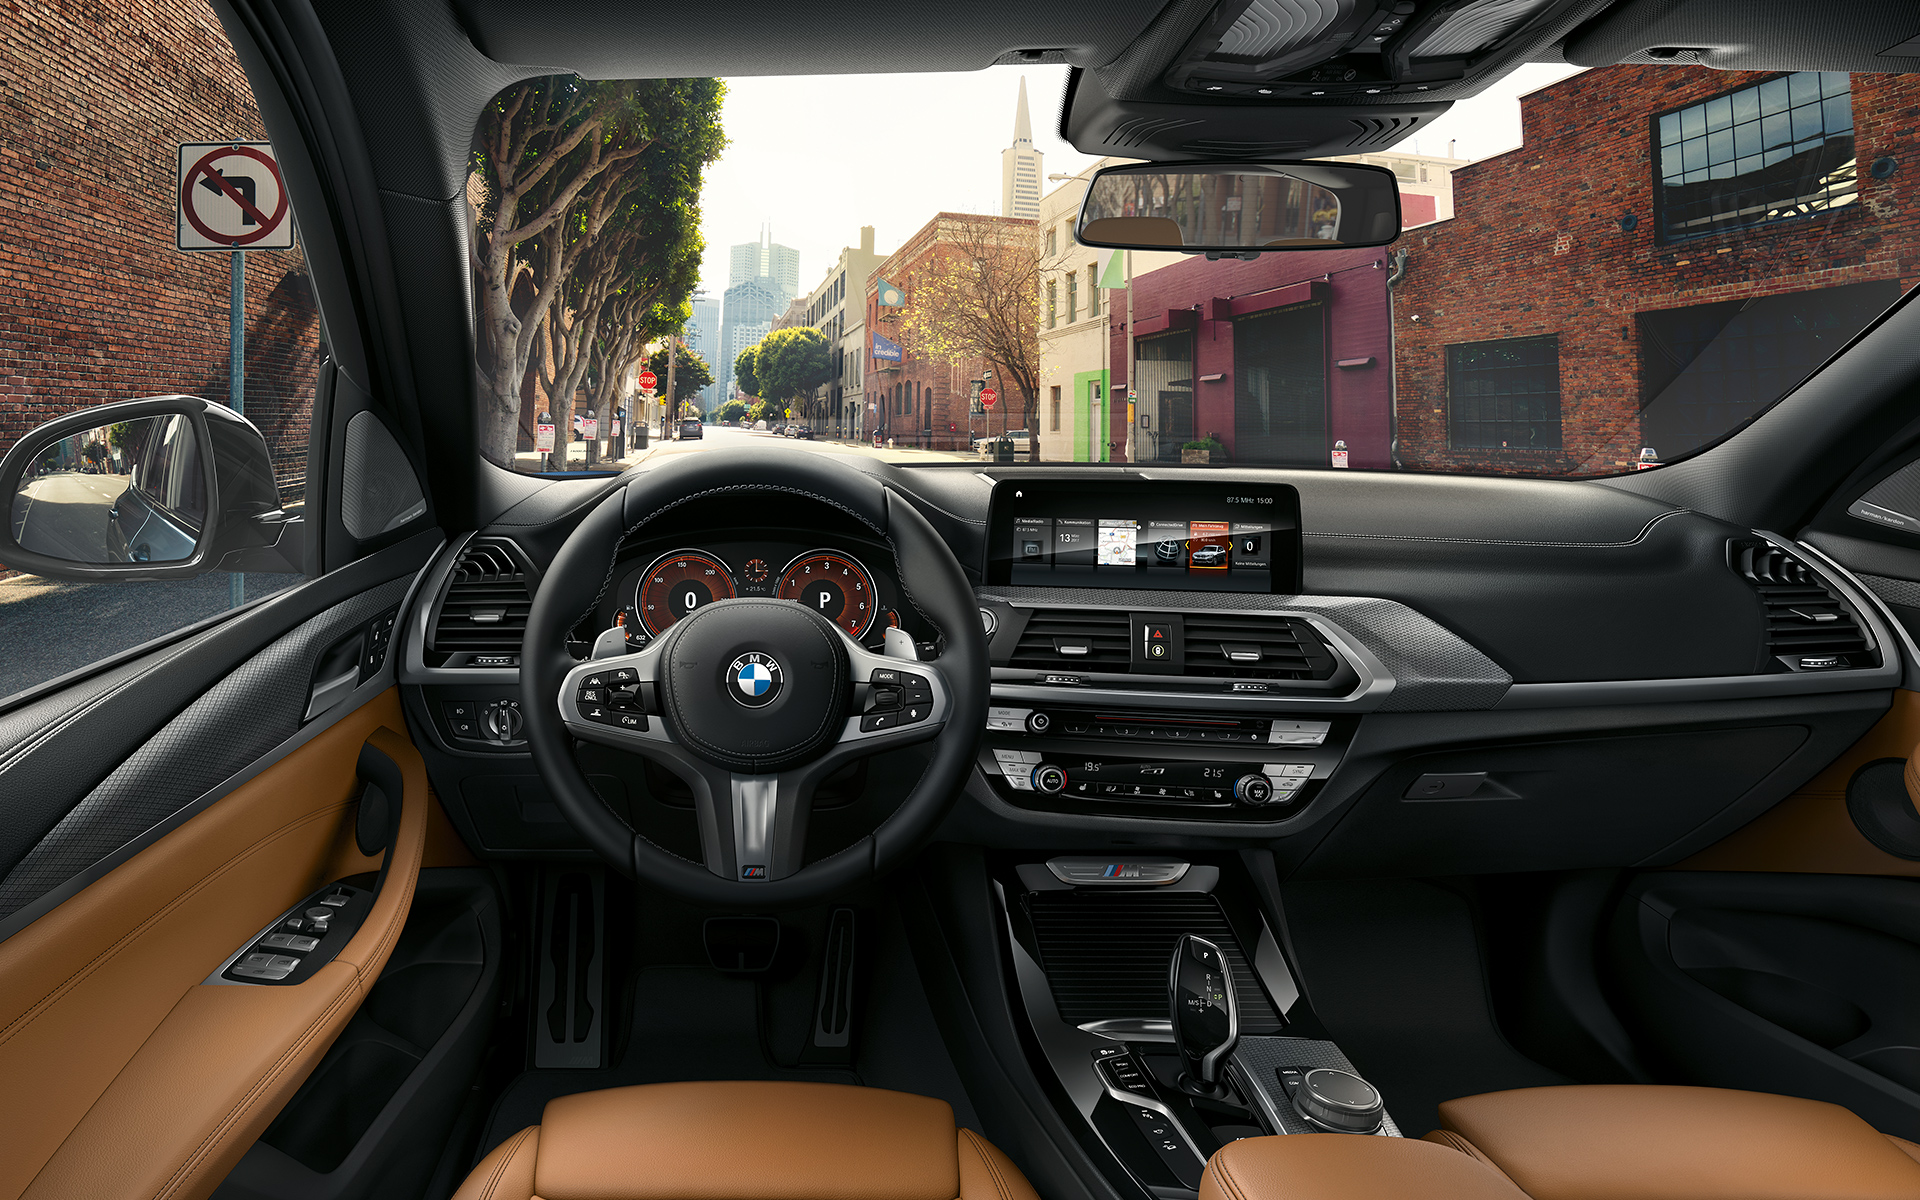 bmw x3 g01 die sch nsten motive als wallpaper. Black Bedroom Furniture Sets. Home Design Ideas